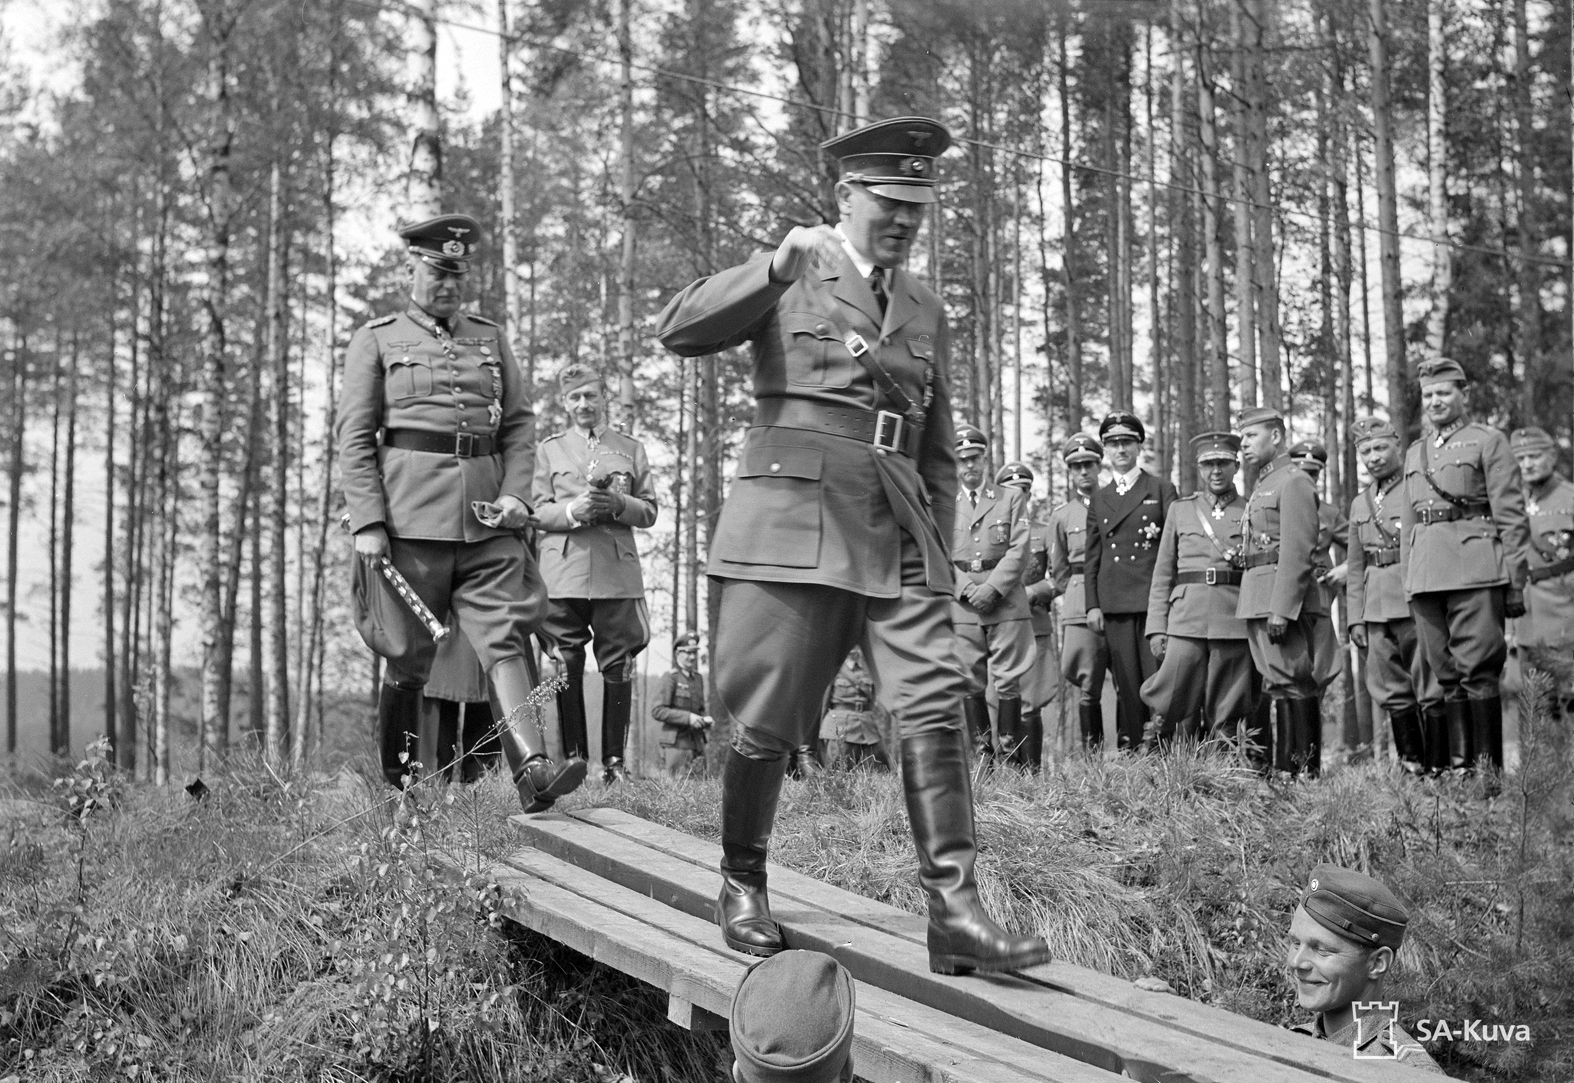 Adolf Hitler walks the plank followed by Marshal Keitel to get access to Mannerheim's train in Finland for Mannerheim 75th birthday